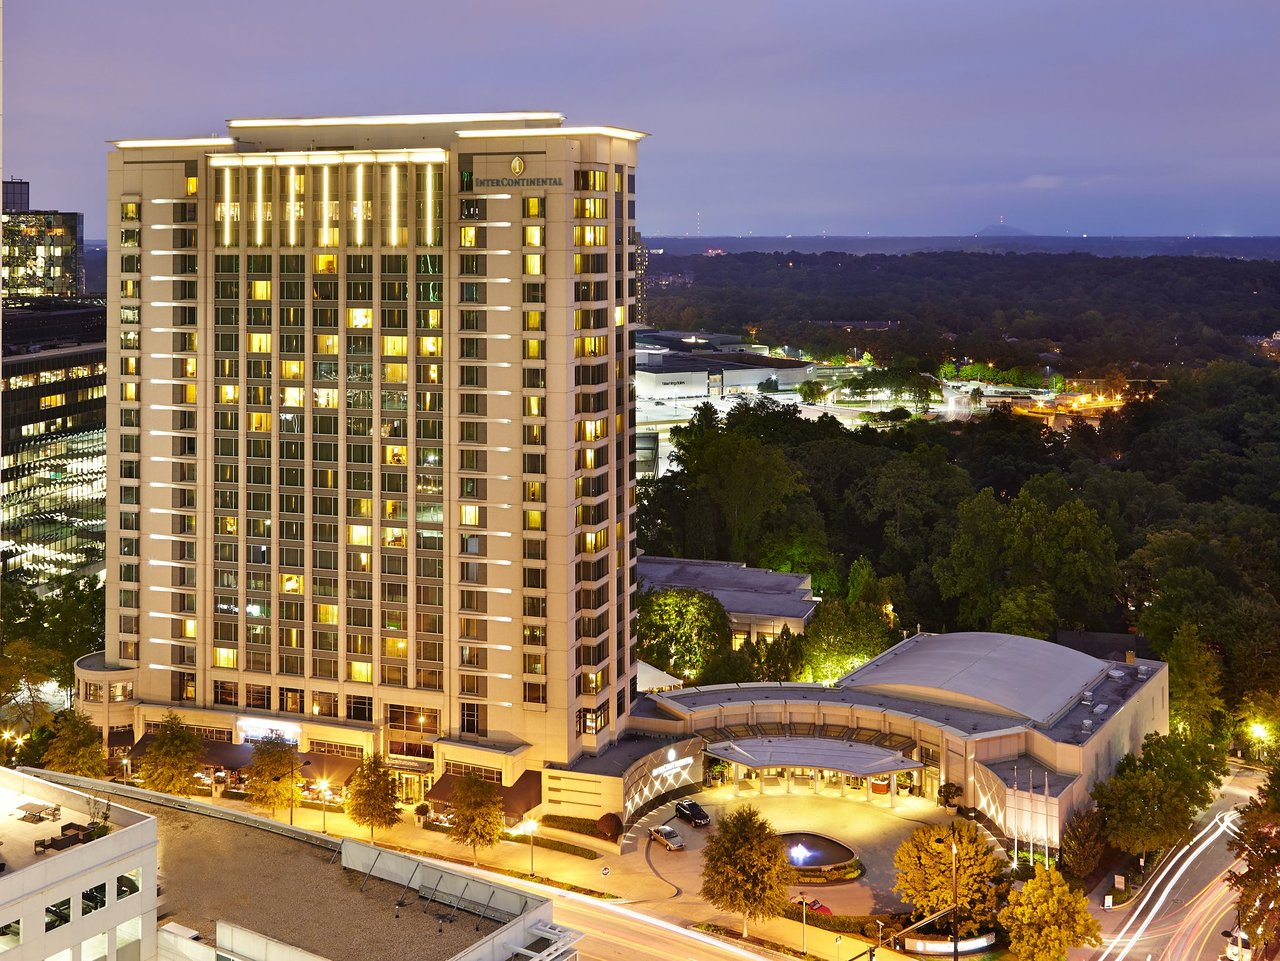 Intercontinental Buckhead - The convention will be hosted in the center of Atlanta at the Intercontinental Hotel of Buckhead. Use the link below to receive discounted rates as an attendee of the 41st NAAMA convention.